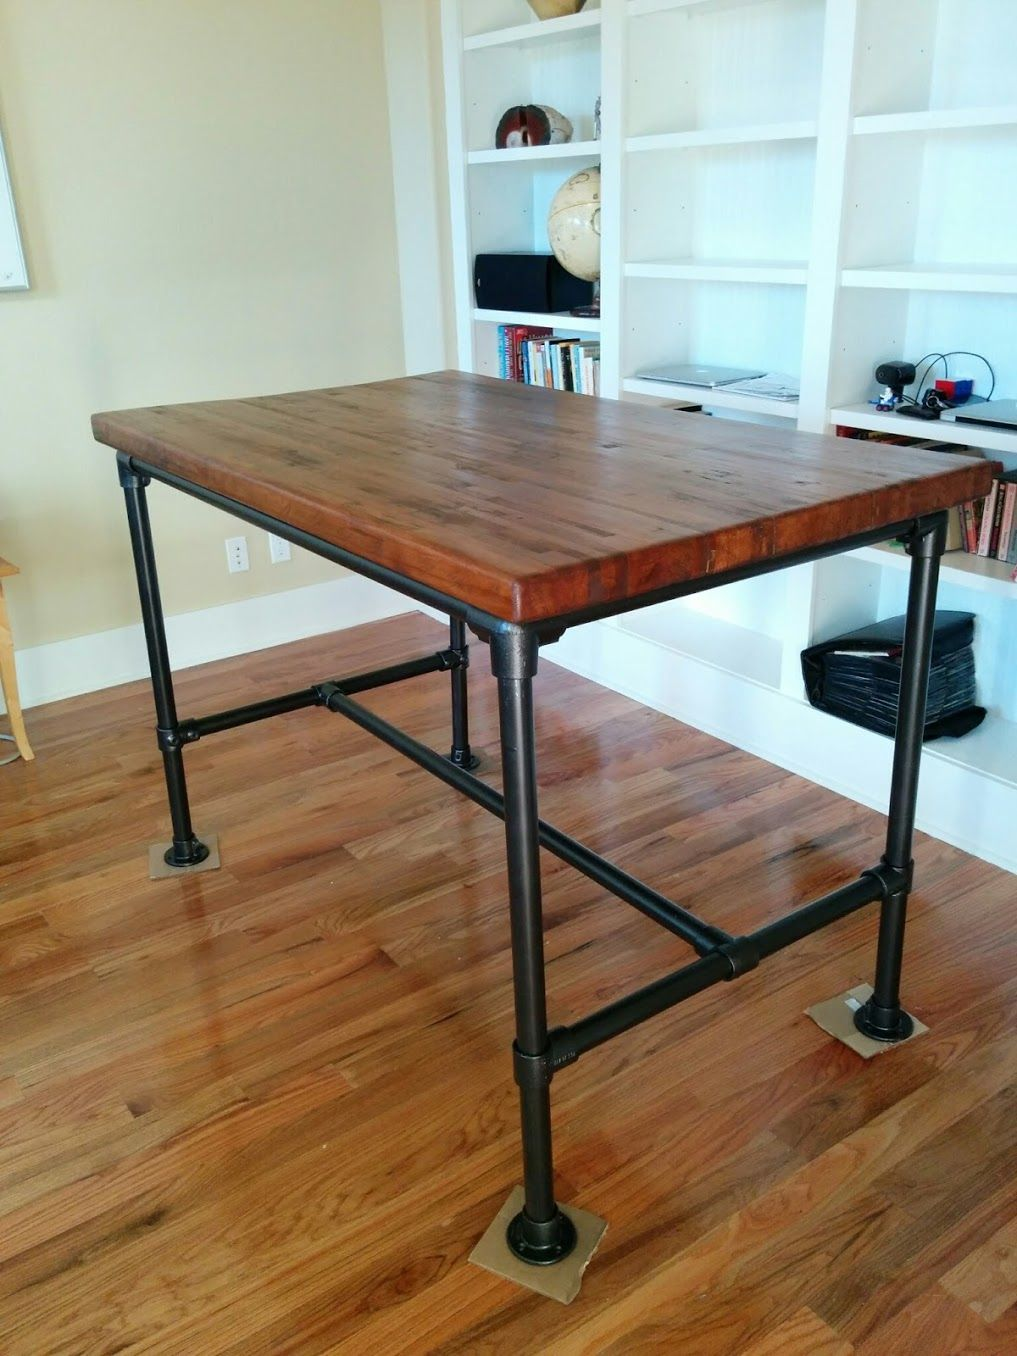 My home office/study work desk made from reclaimed railroad car flooring and a http://www.simplifiedbuilding.com/ desk frame kit painted oil rubbed broze